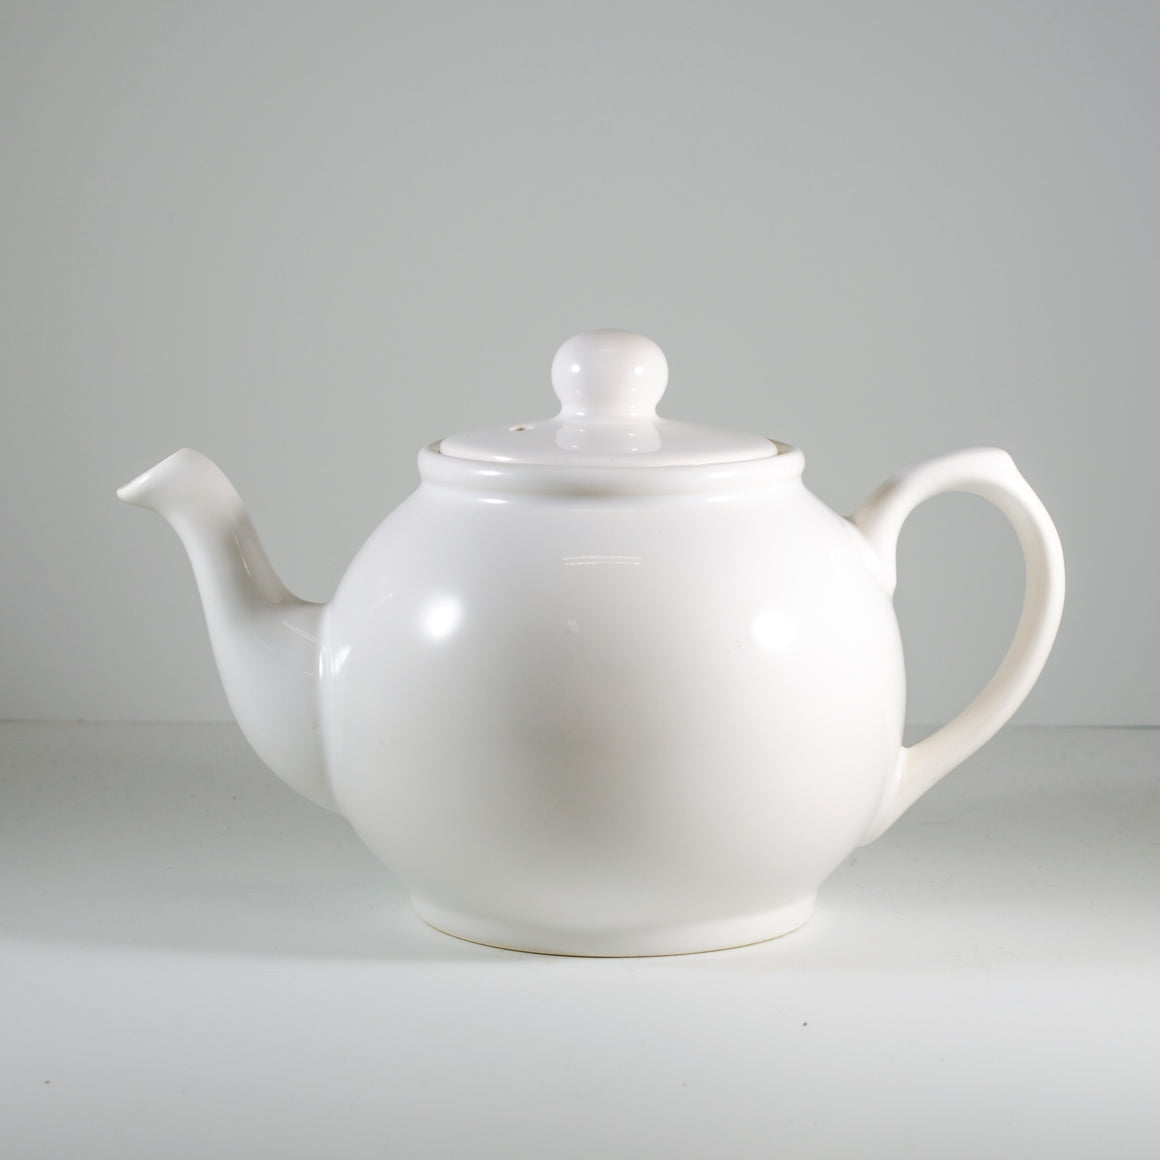 Arthur Wood Teapot - Todd & Holland Tea Merchants